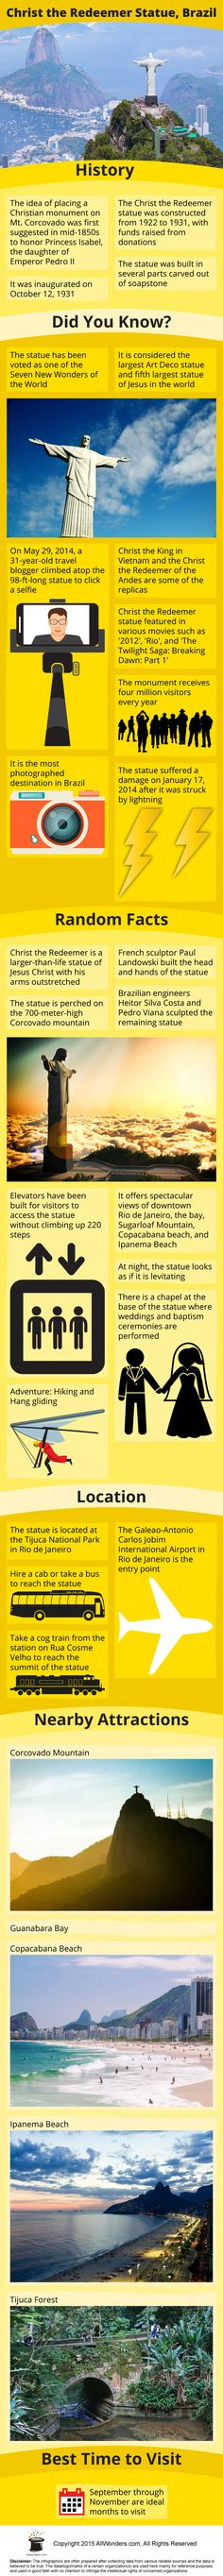 Infographic showing facts and information about Christ The Redeemer statue. Know about its location, best time to visit, nearby attractions and more.